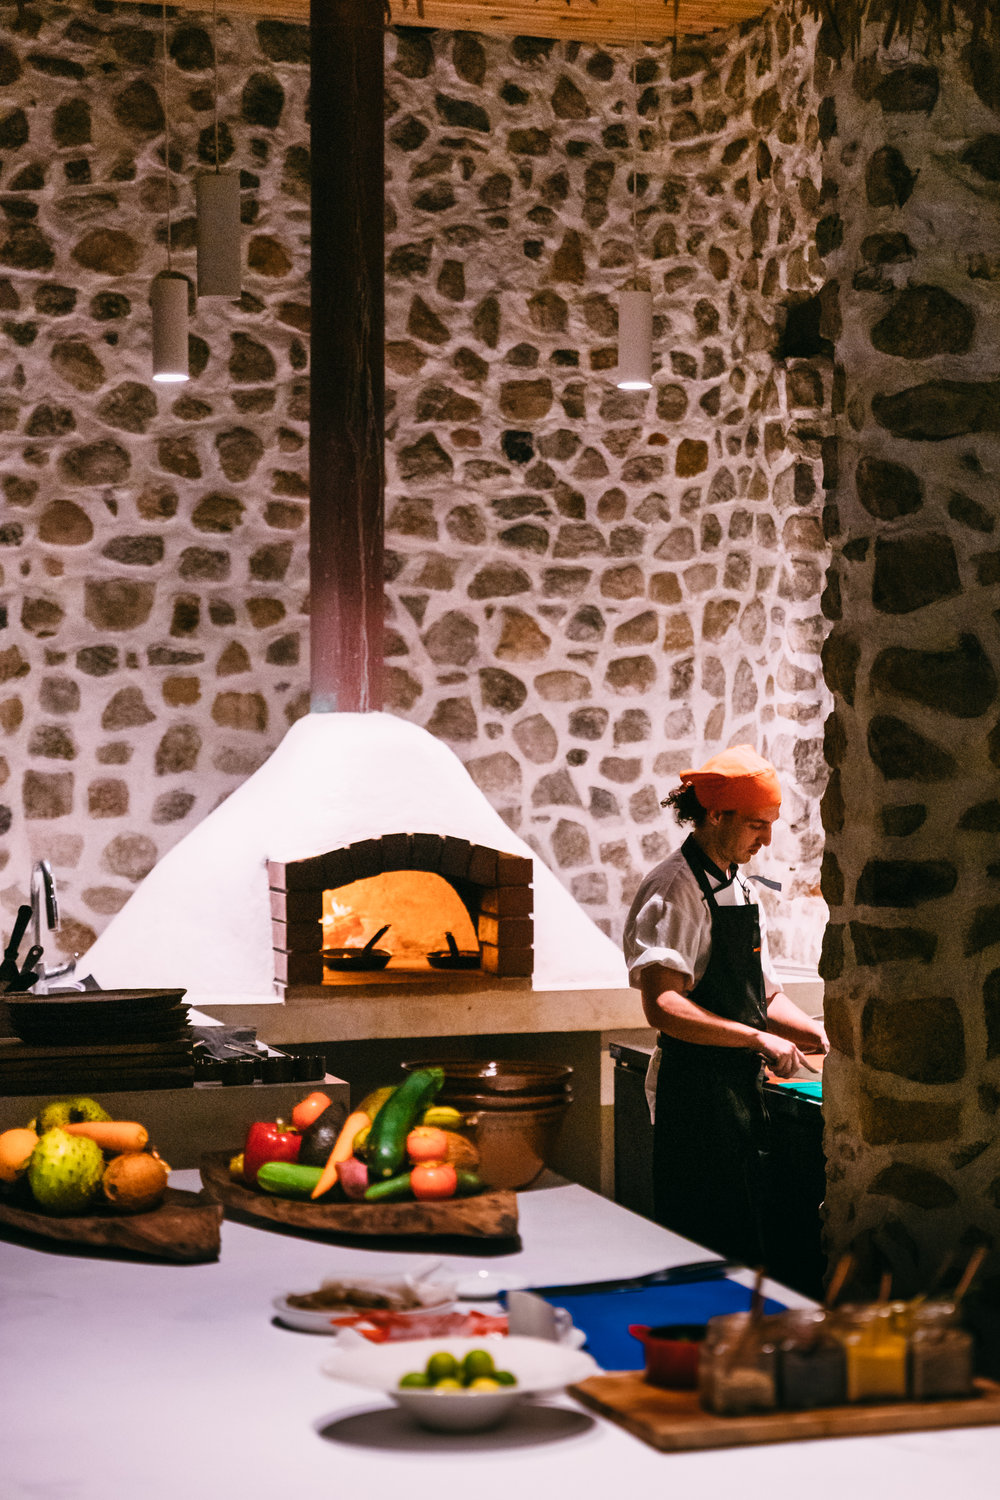 The wood-fired pizza oven at West Beach Bar on North Island, Seychelles